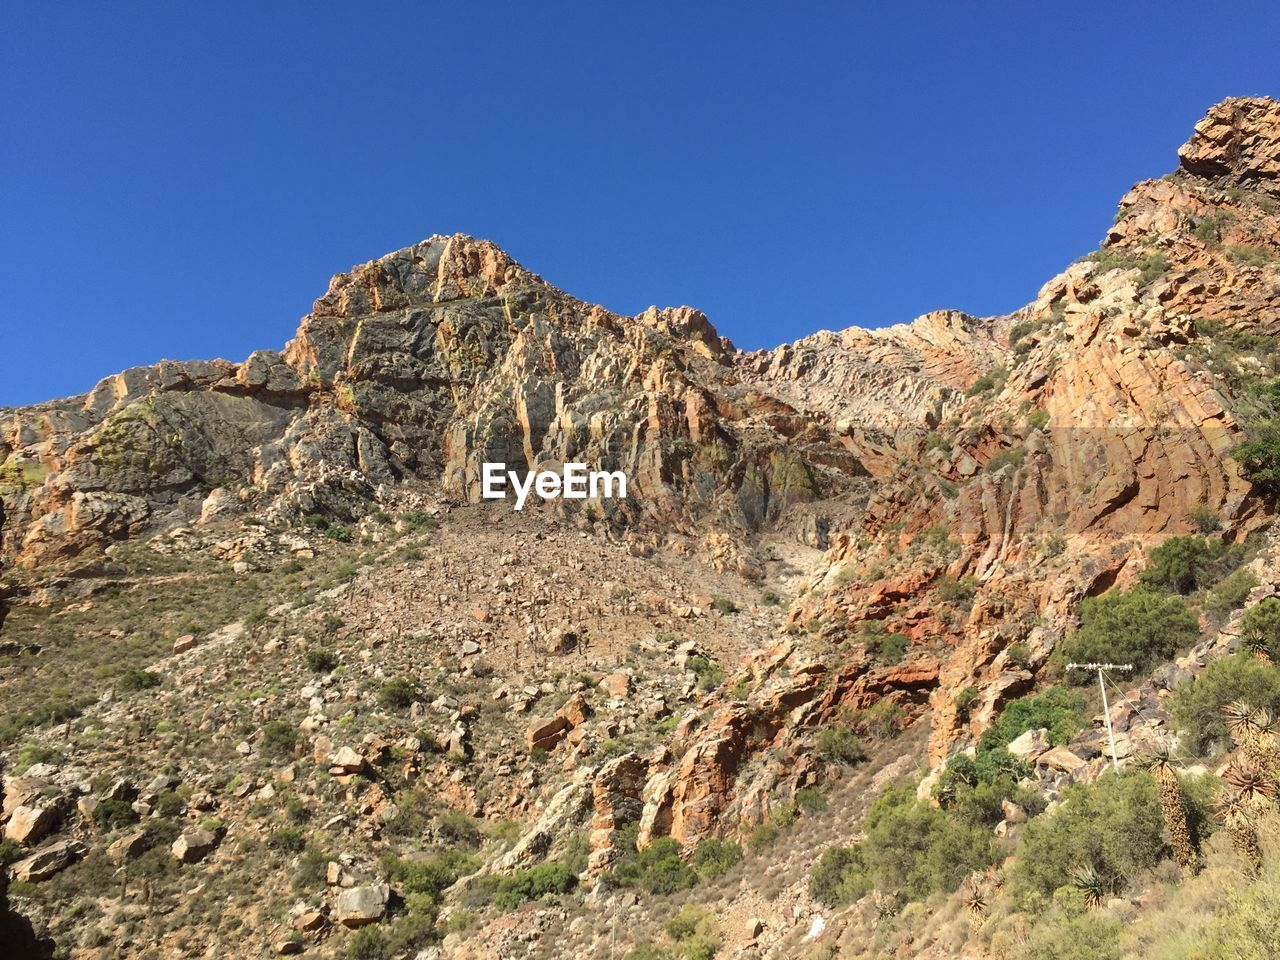 rock formation, clear sky, nature, geology, rock - object, beauty in nature, mountain, day, physical geography, tranquility, non-urban scene, scenics, outdoors, rocky mountains, tranquil scene, low angle view, cliff, landscape, blue, no people, sky